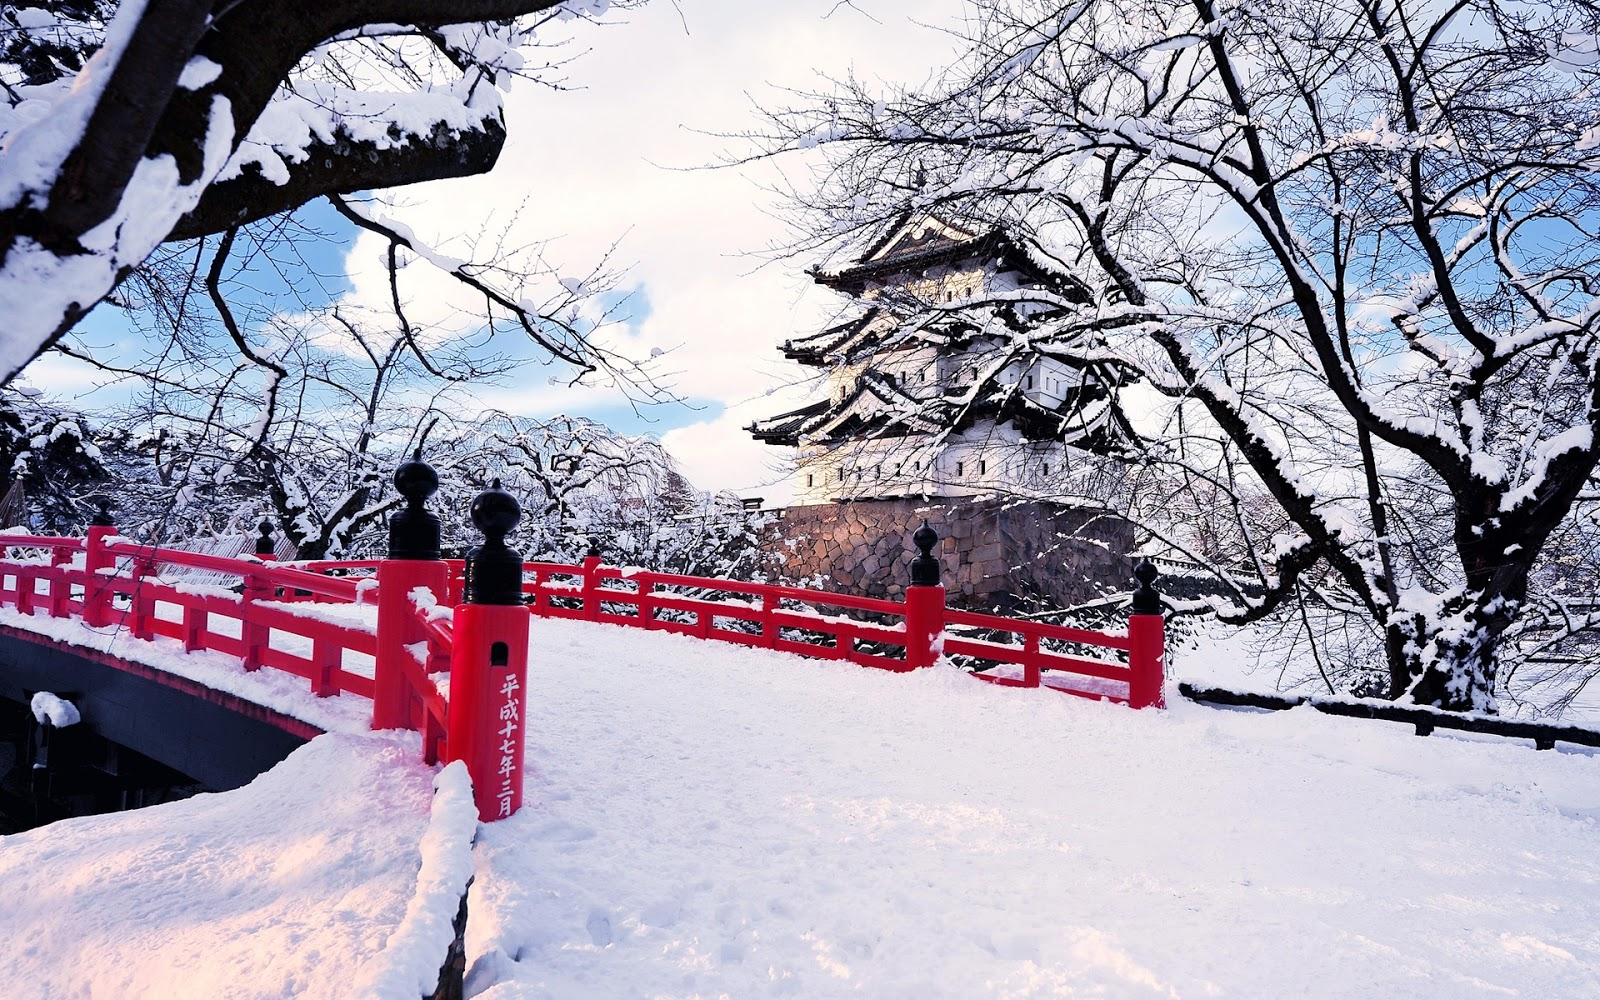 Japan-Aomori-Prefecture-Hirosaki-winter-snow-bridge-castel-ice-trees_1920x1200